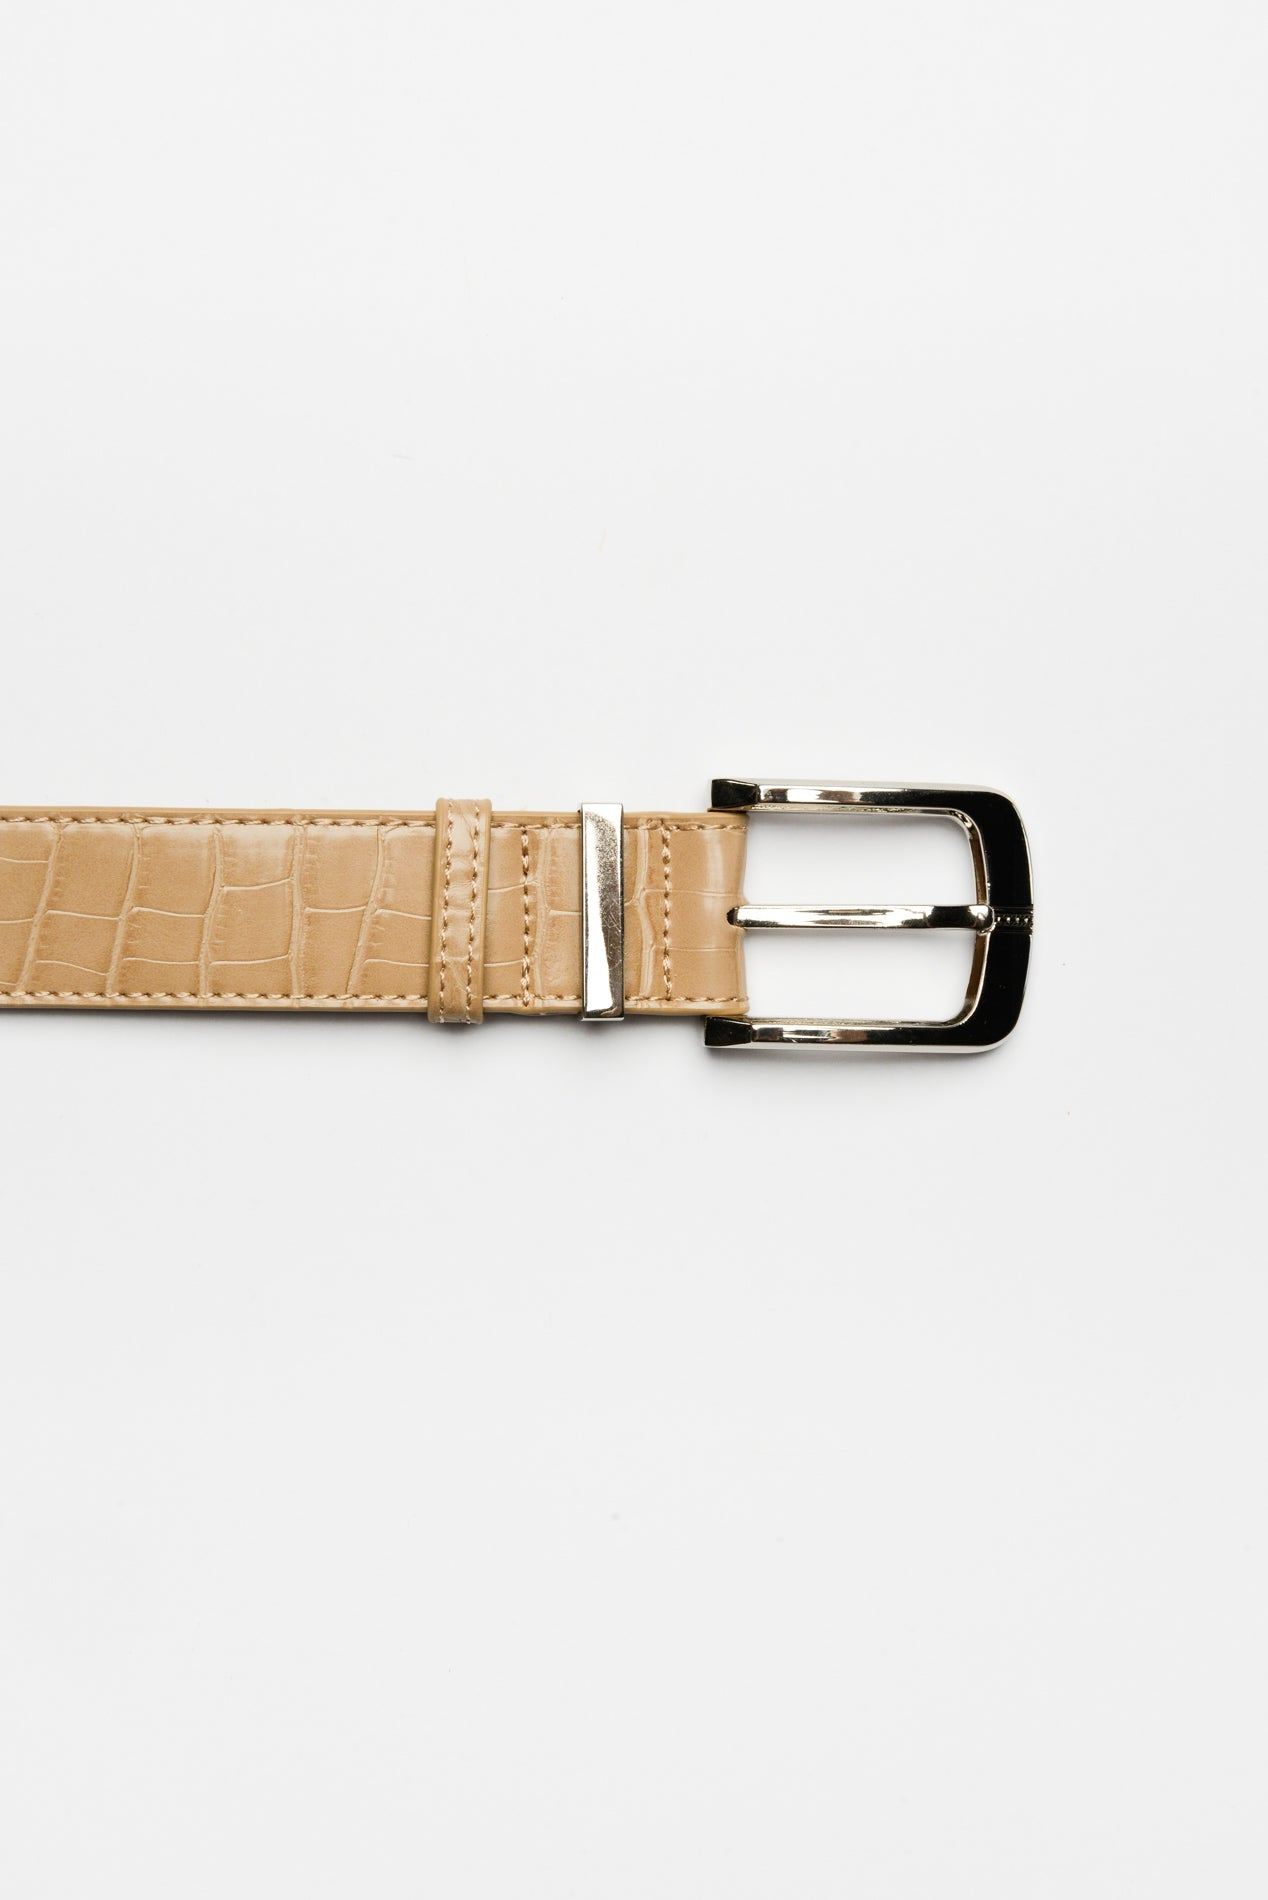 Nude Croc Embossed Belt - Blue Bungalow